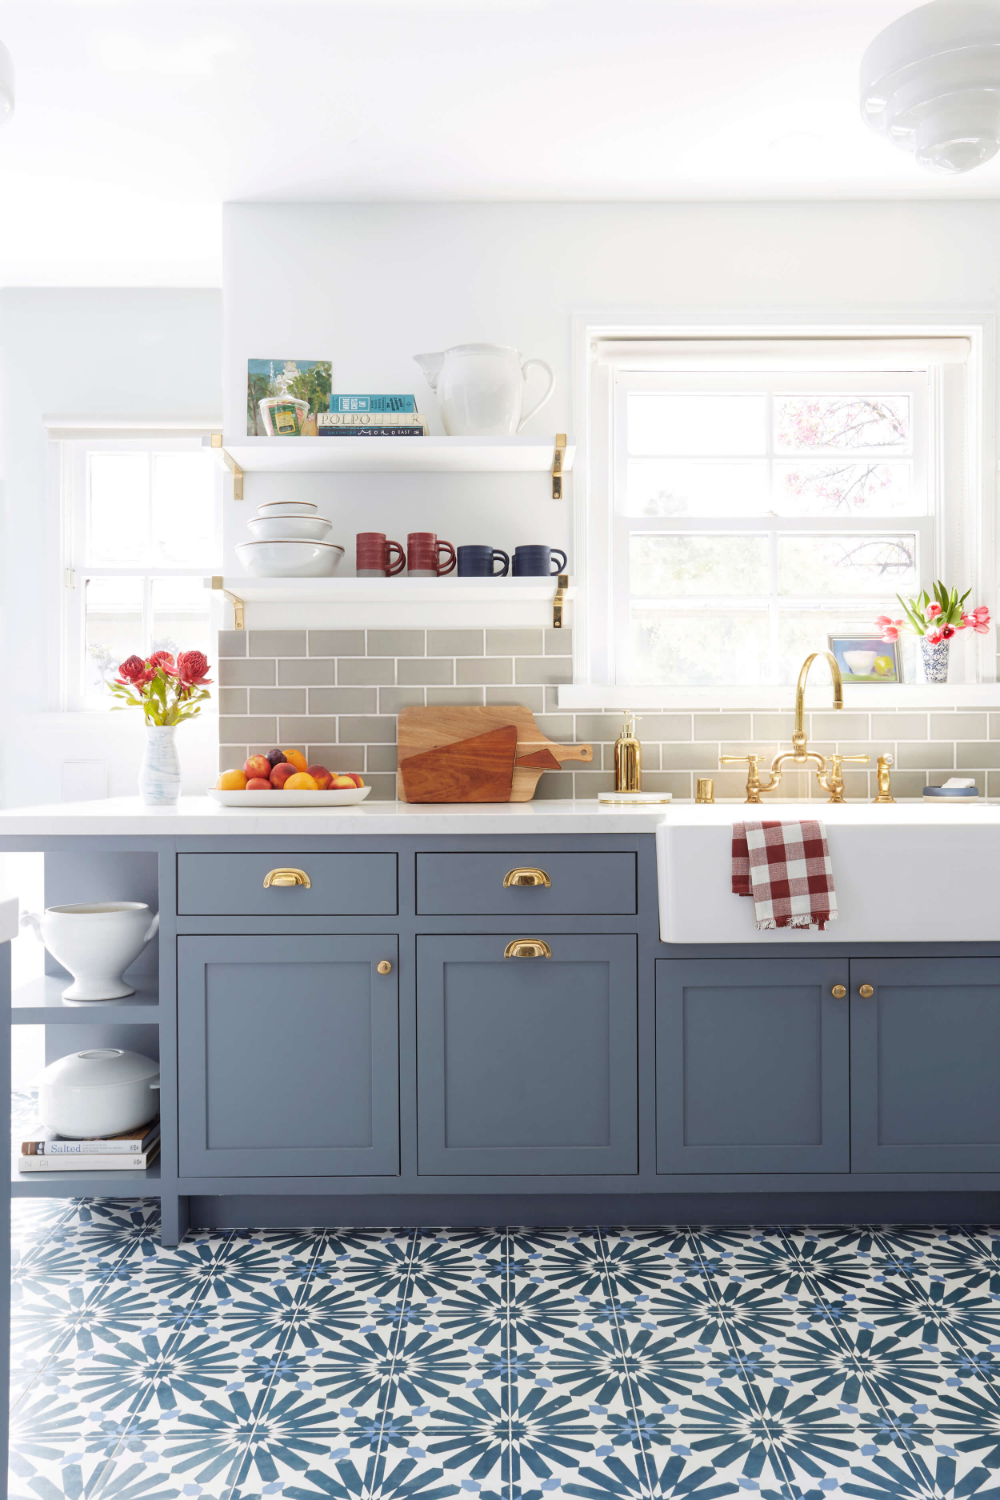 Kitchen Cabinets Richmond Bc 40 Beautiful Kitchens With Gray Kitchen Cabinets In 2020 Grey Kitchen Cabinets Kitchen Cabinets Grey Kitchen Located In Richmond And Greater Vancouver Bc We Offer High